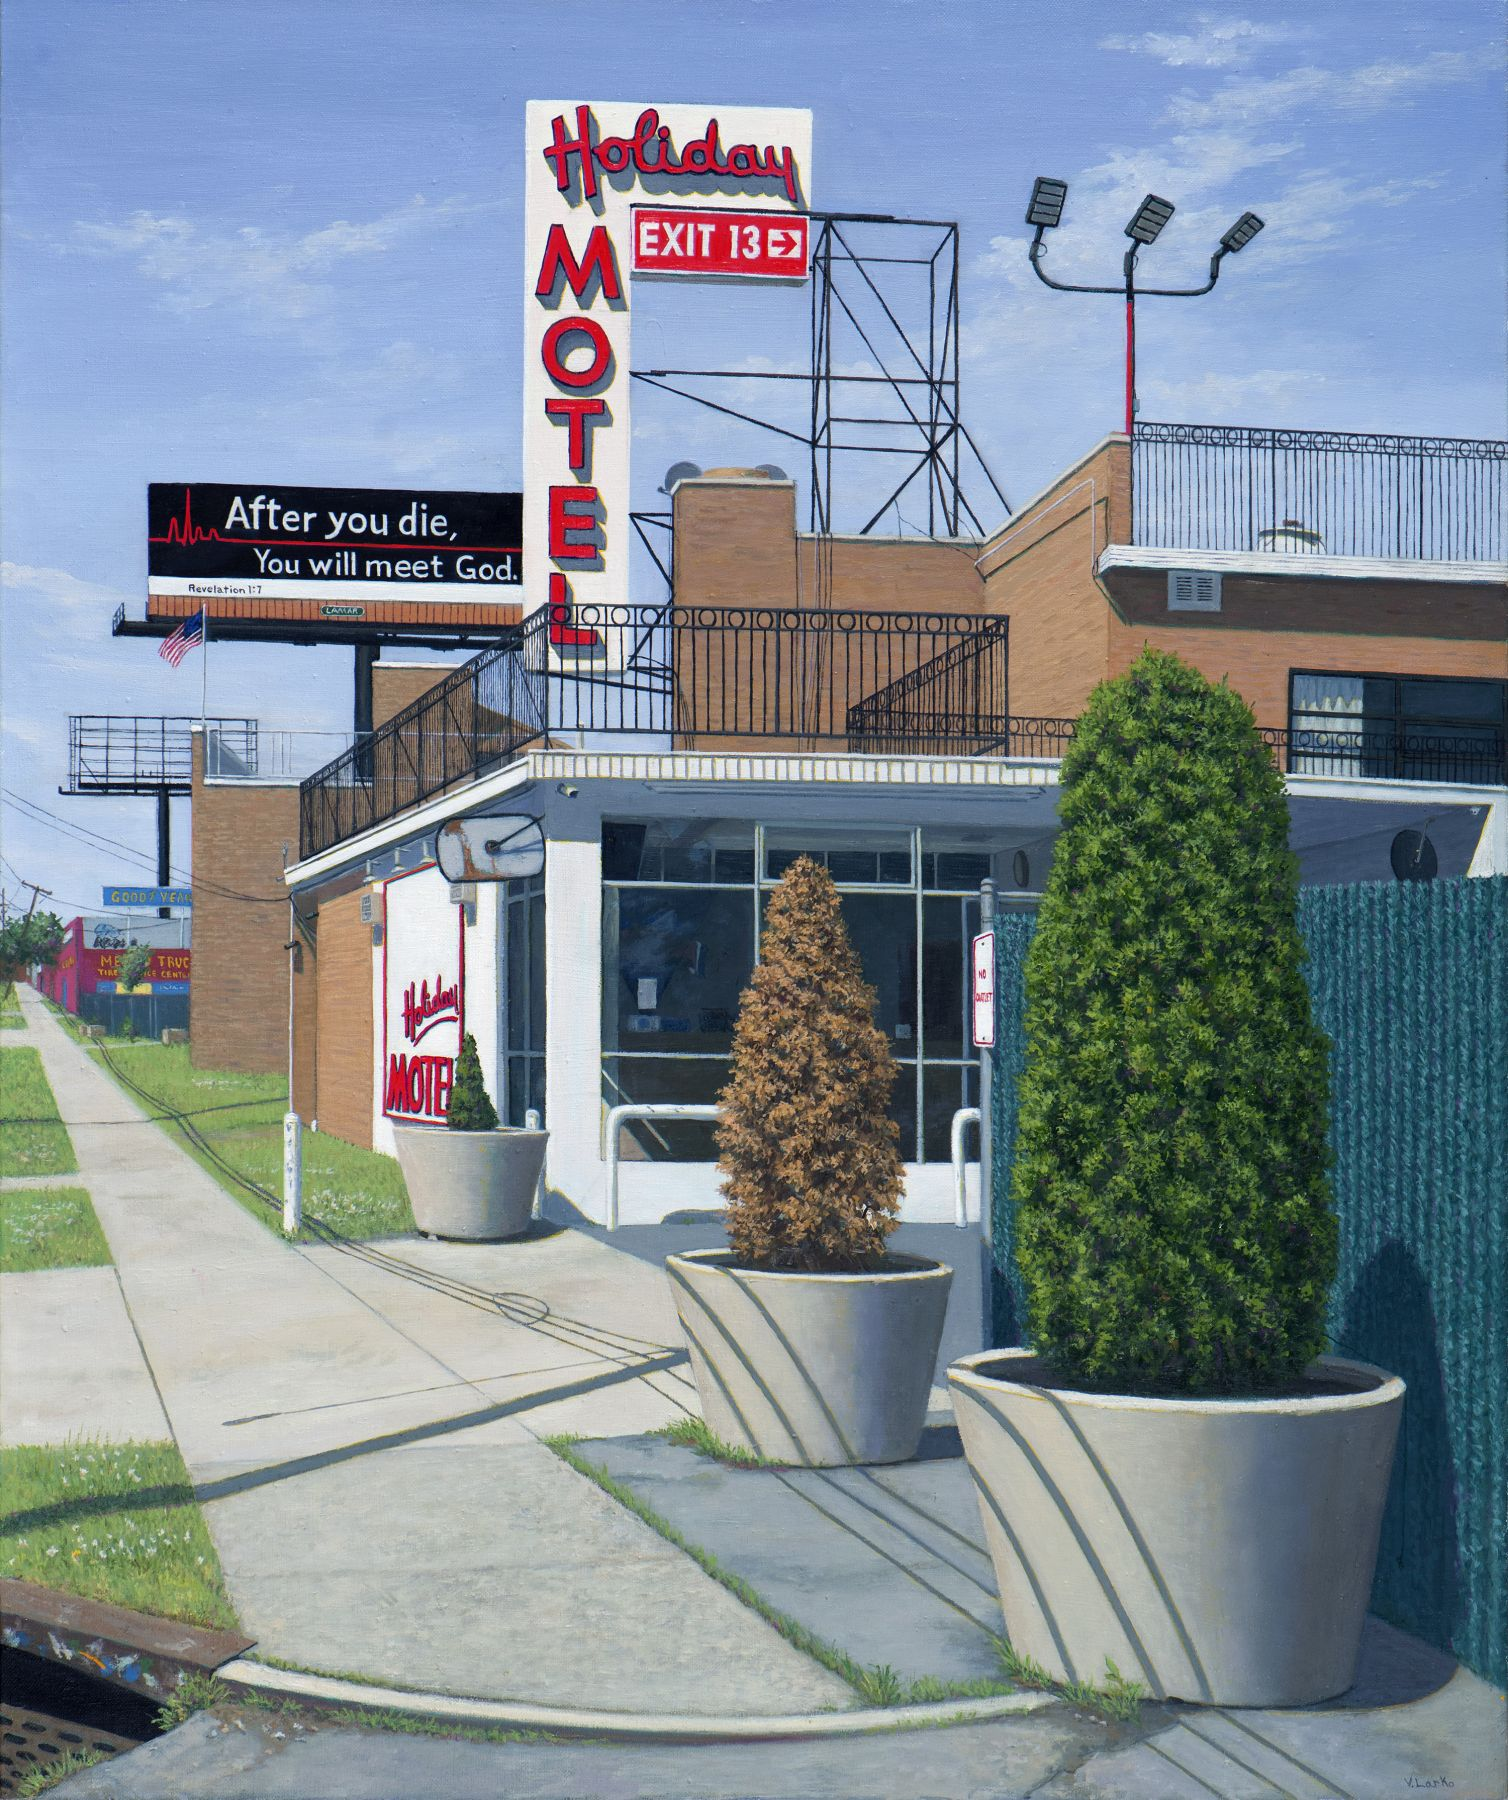 Valeri Larko painting titled Holiday Motel, Bronx, 2018, oil on linen, 36 x 30 inches imagery ubran landscape one story dated hotel